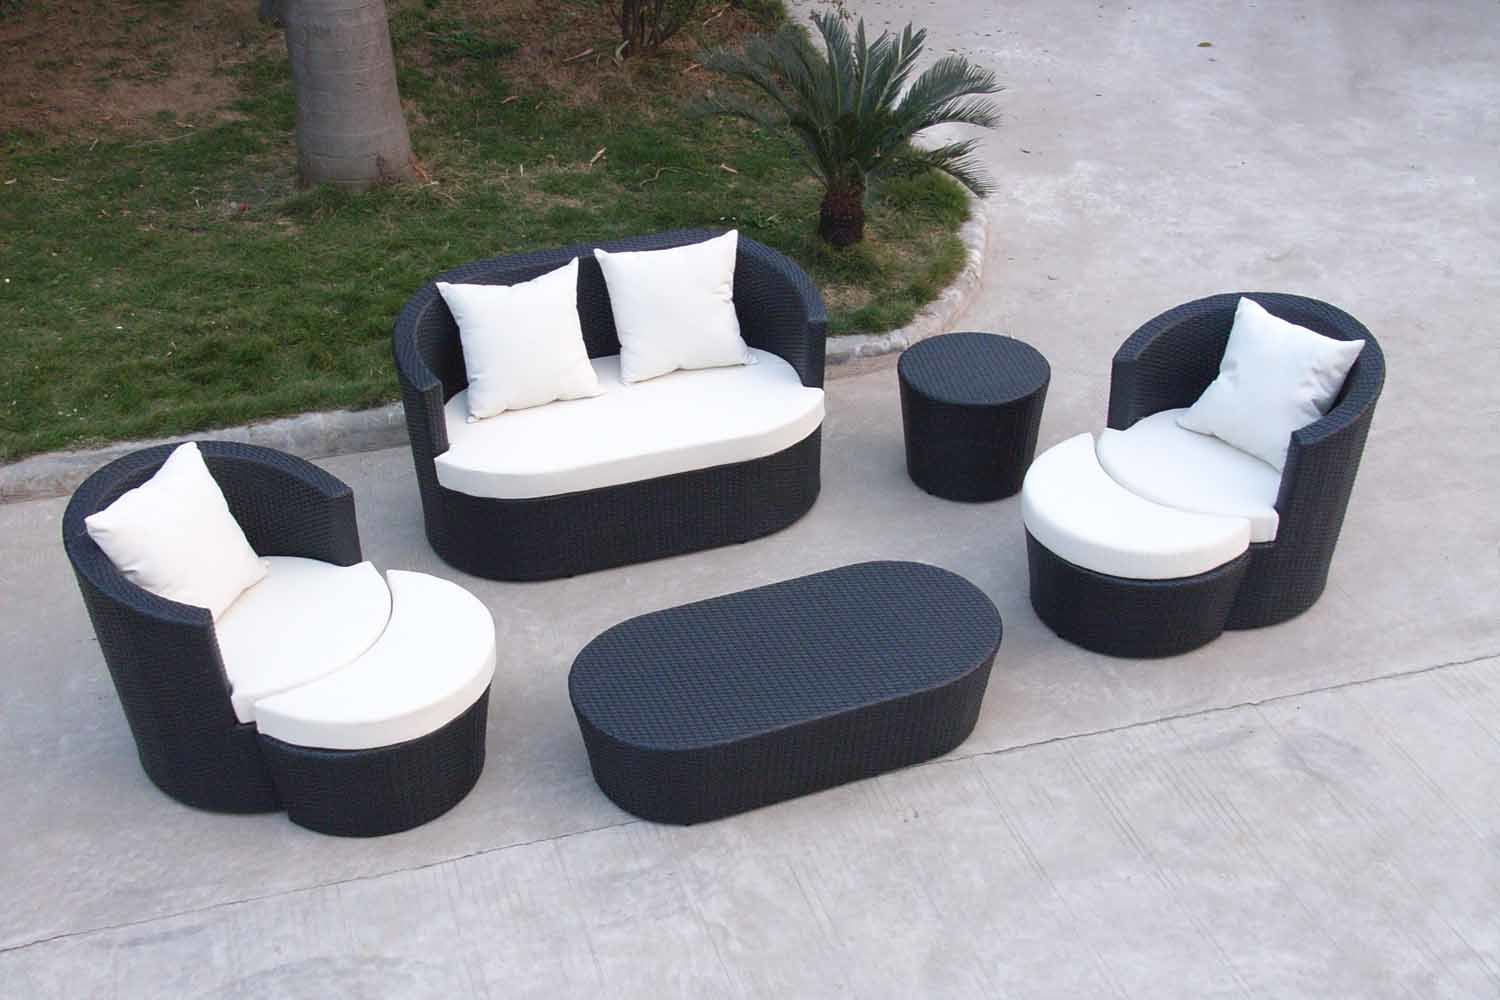 Outdoor Furniture Design Ideas | 1500 x 1000 · 96 kB · jpeg